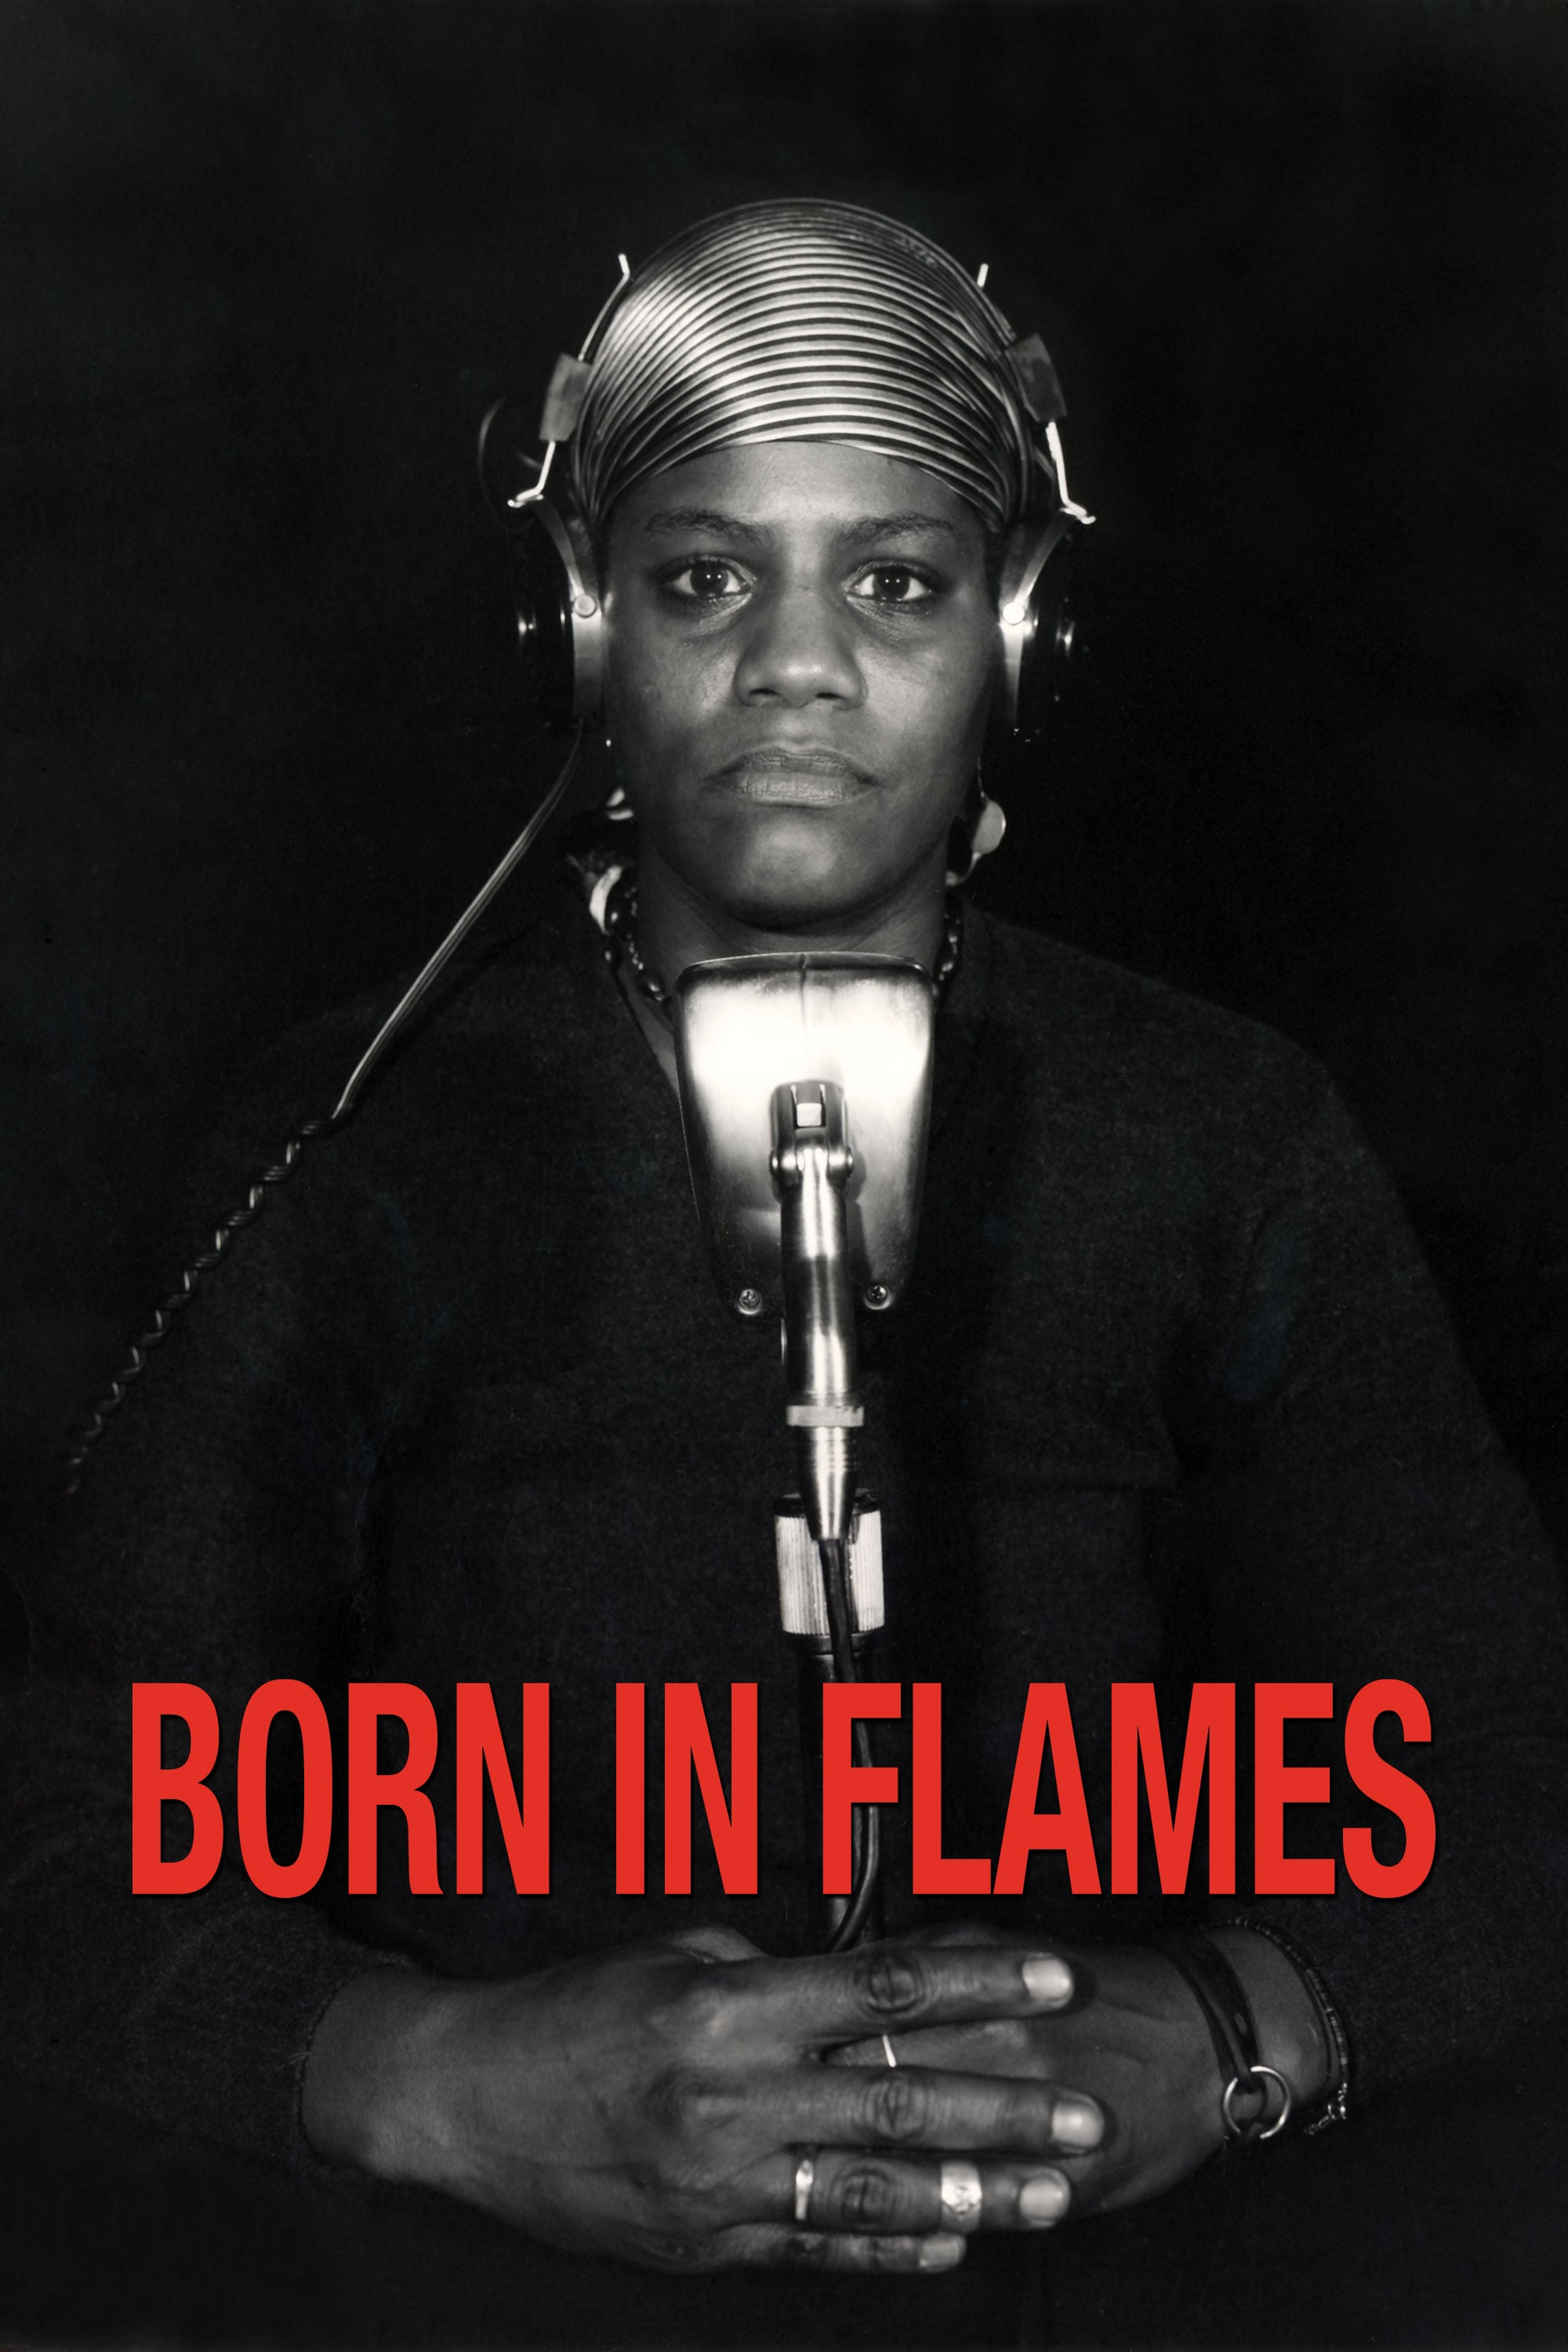 Poster for BORN IN FLAMES